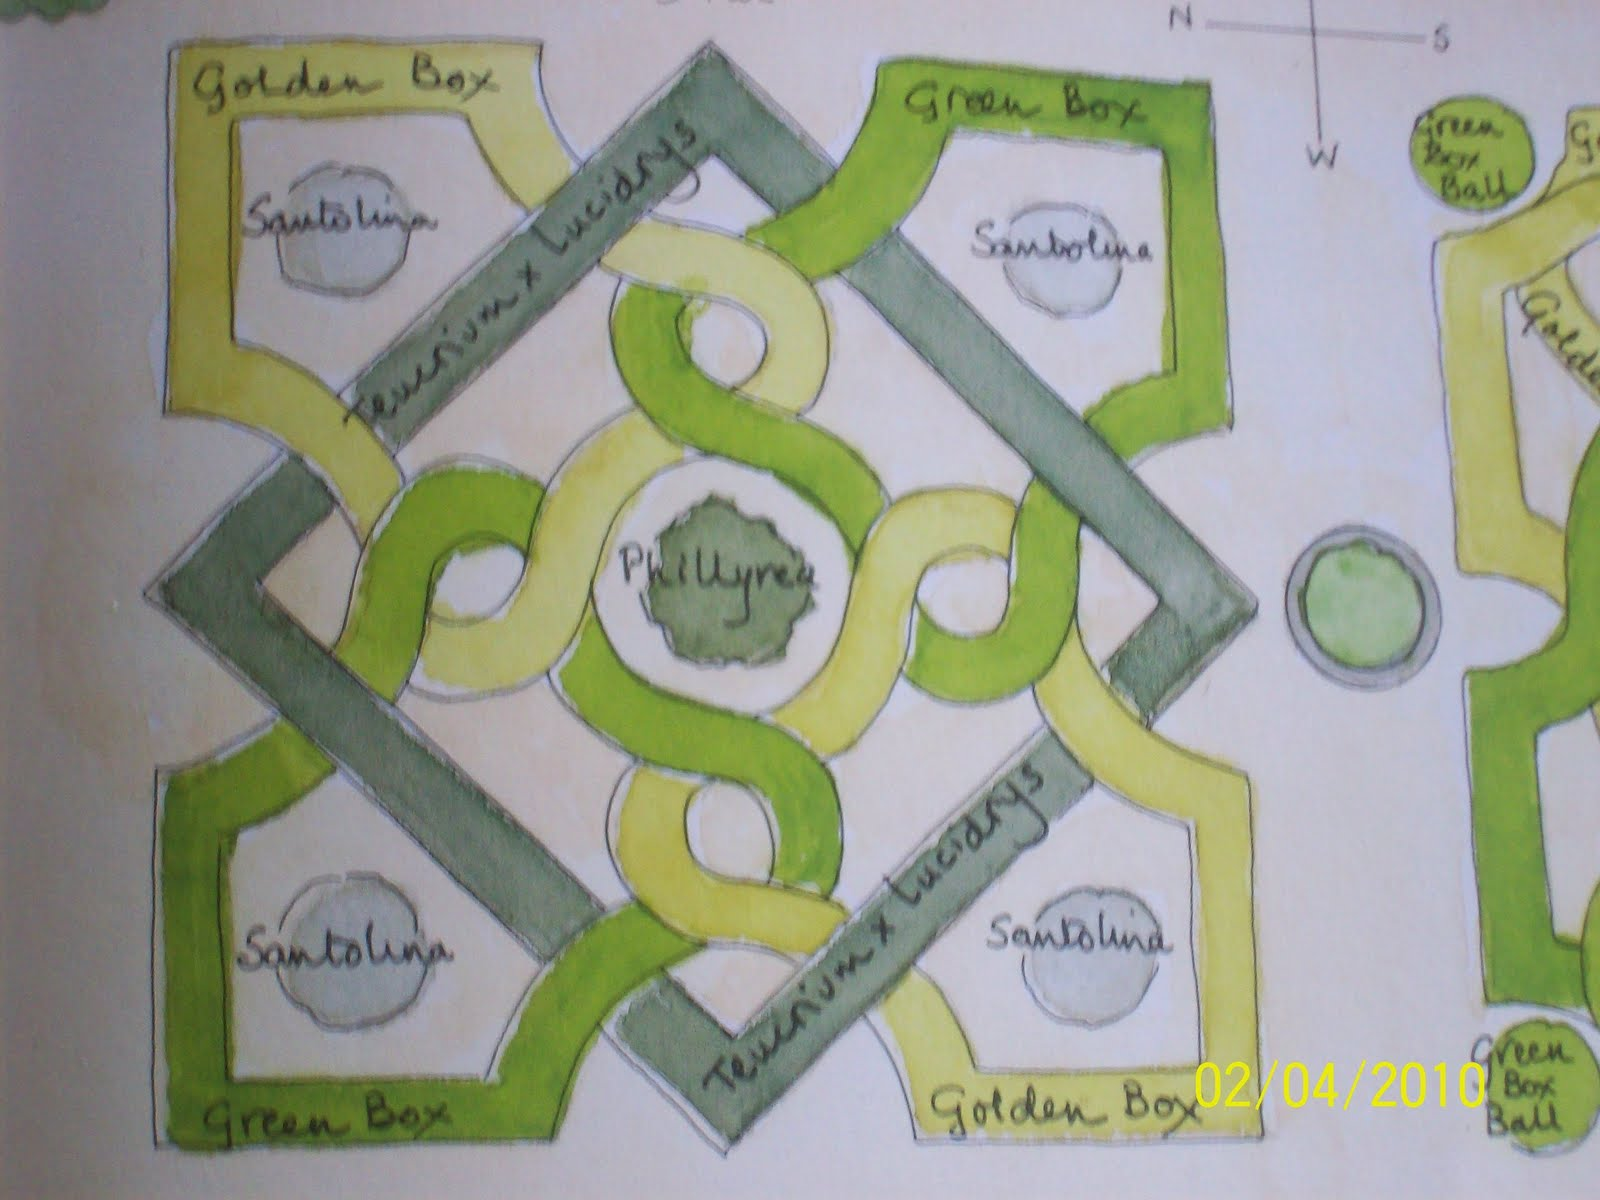 Garden Plan: Stars SoCal Succulents And Cactus: More Patterned Gardens